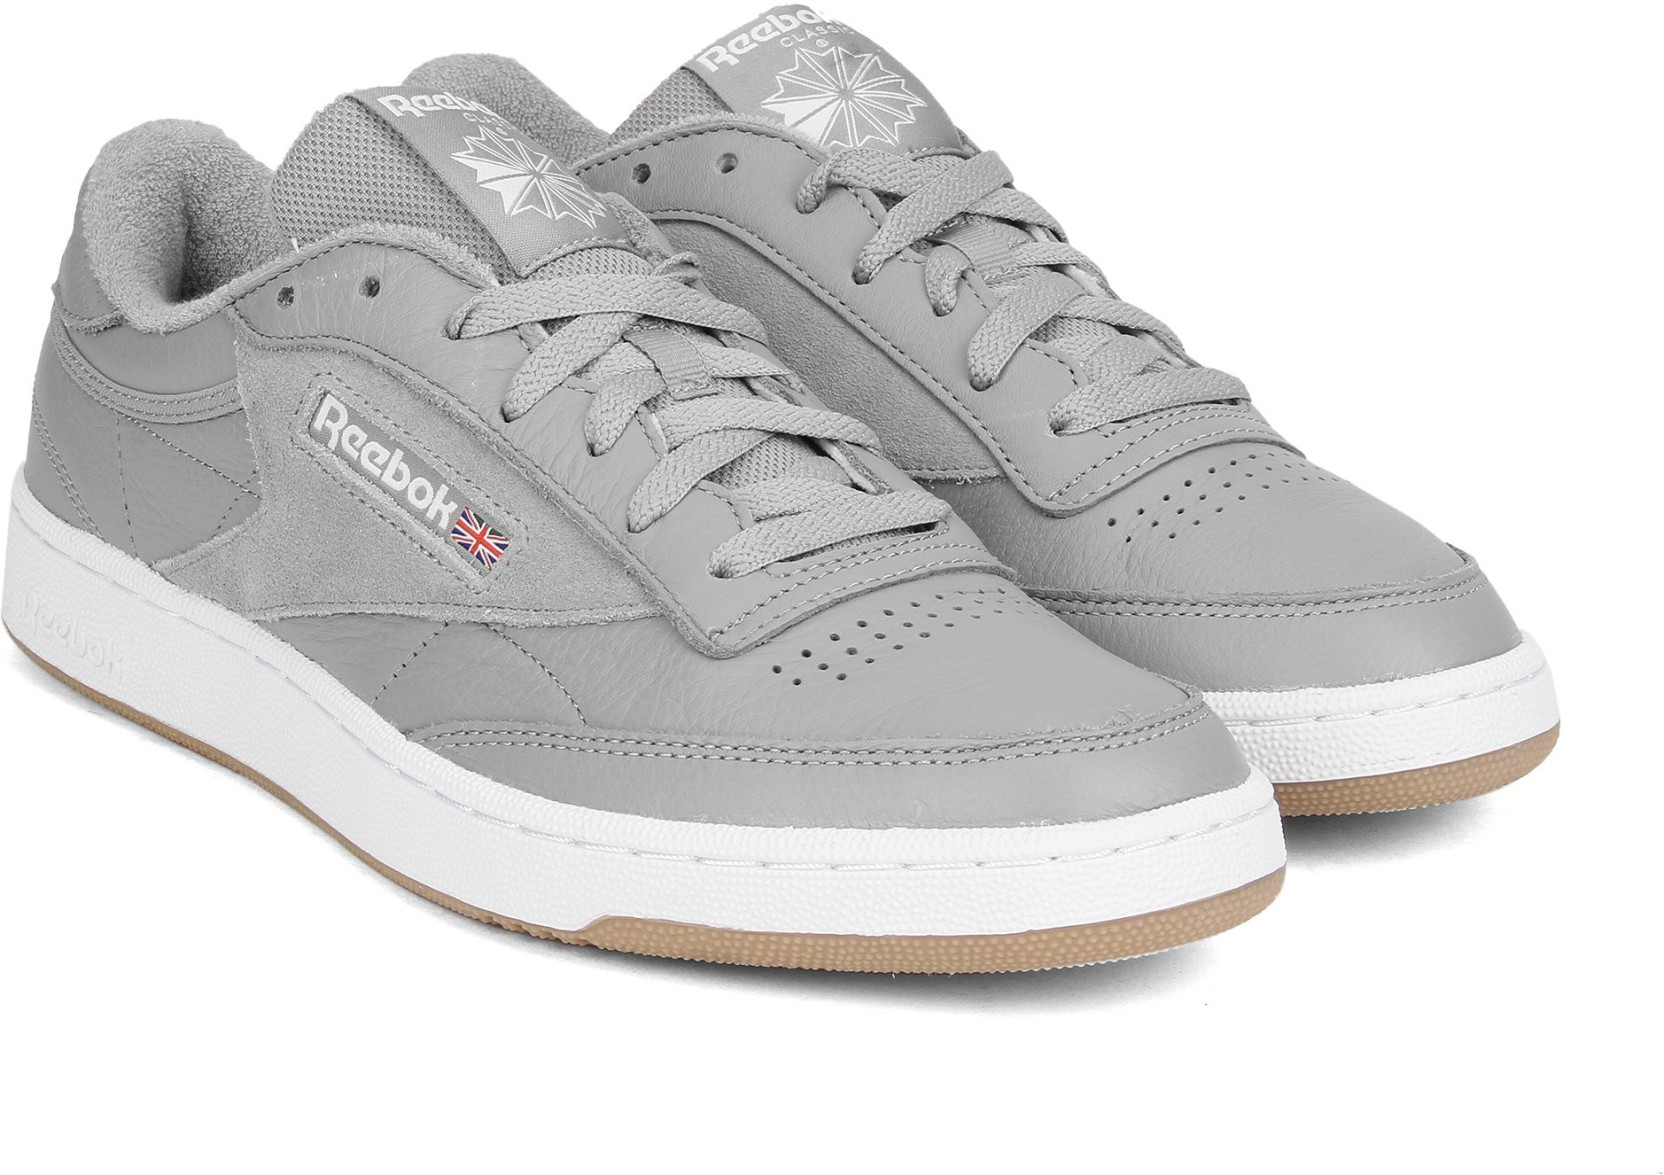 REEBOK CLUB C 85 ESTL Sneakers For Men - Buy POWDER GREY WHT WSHD ... fe1975779